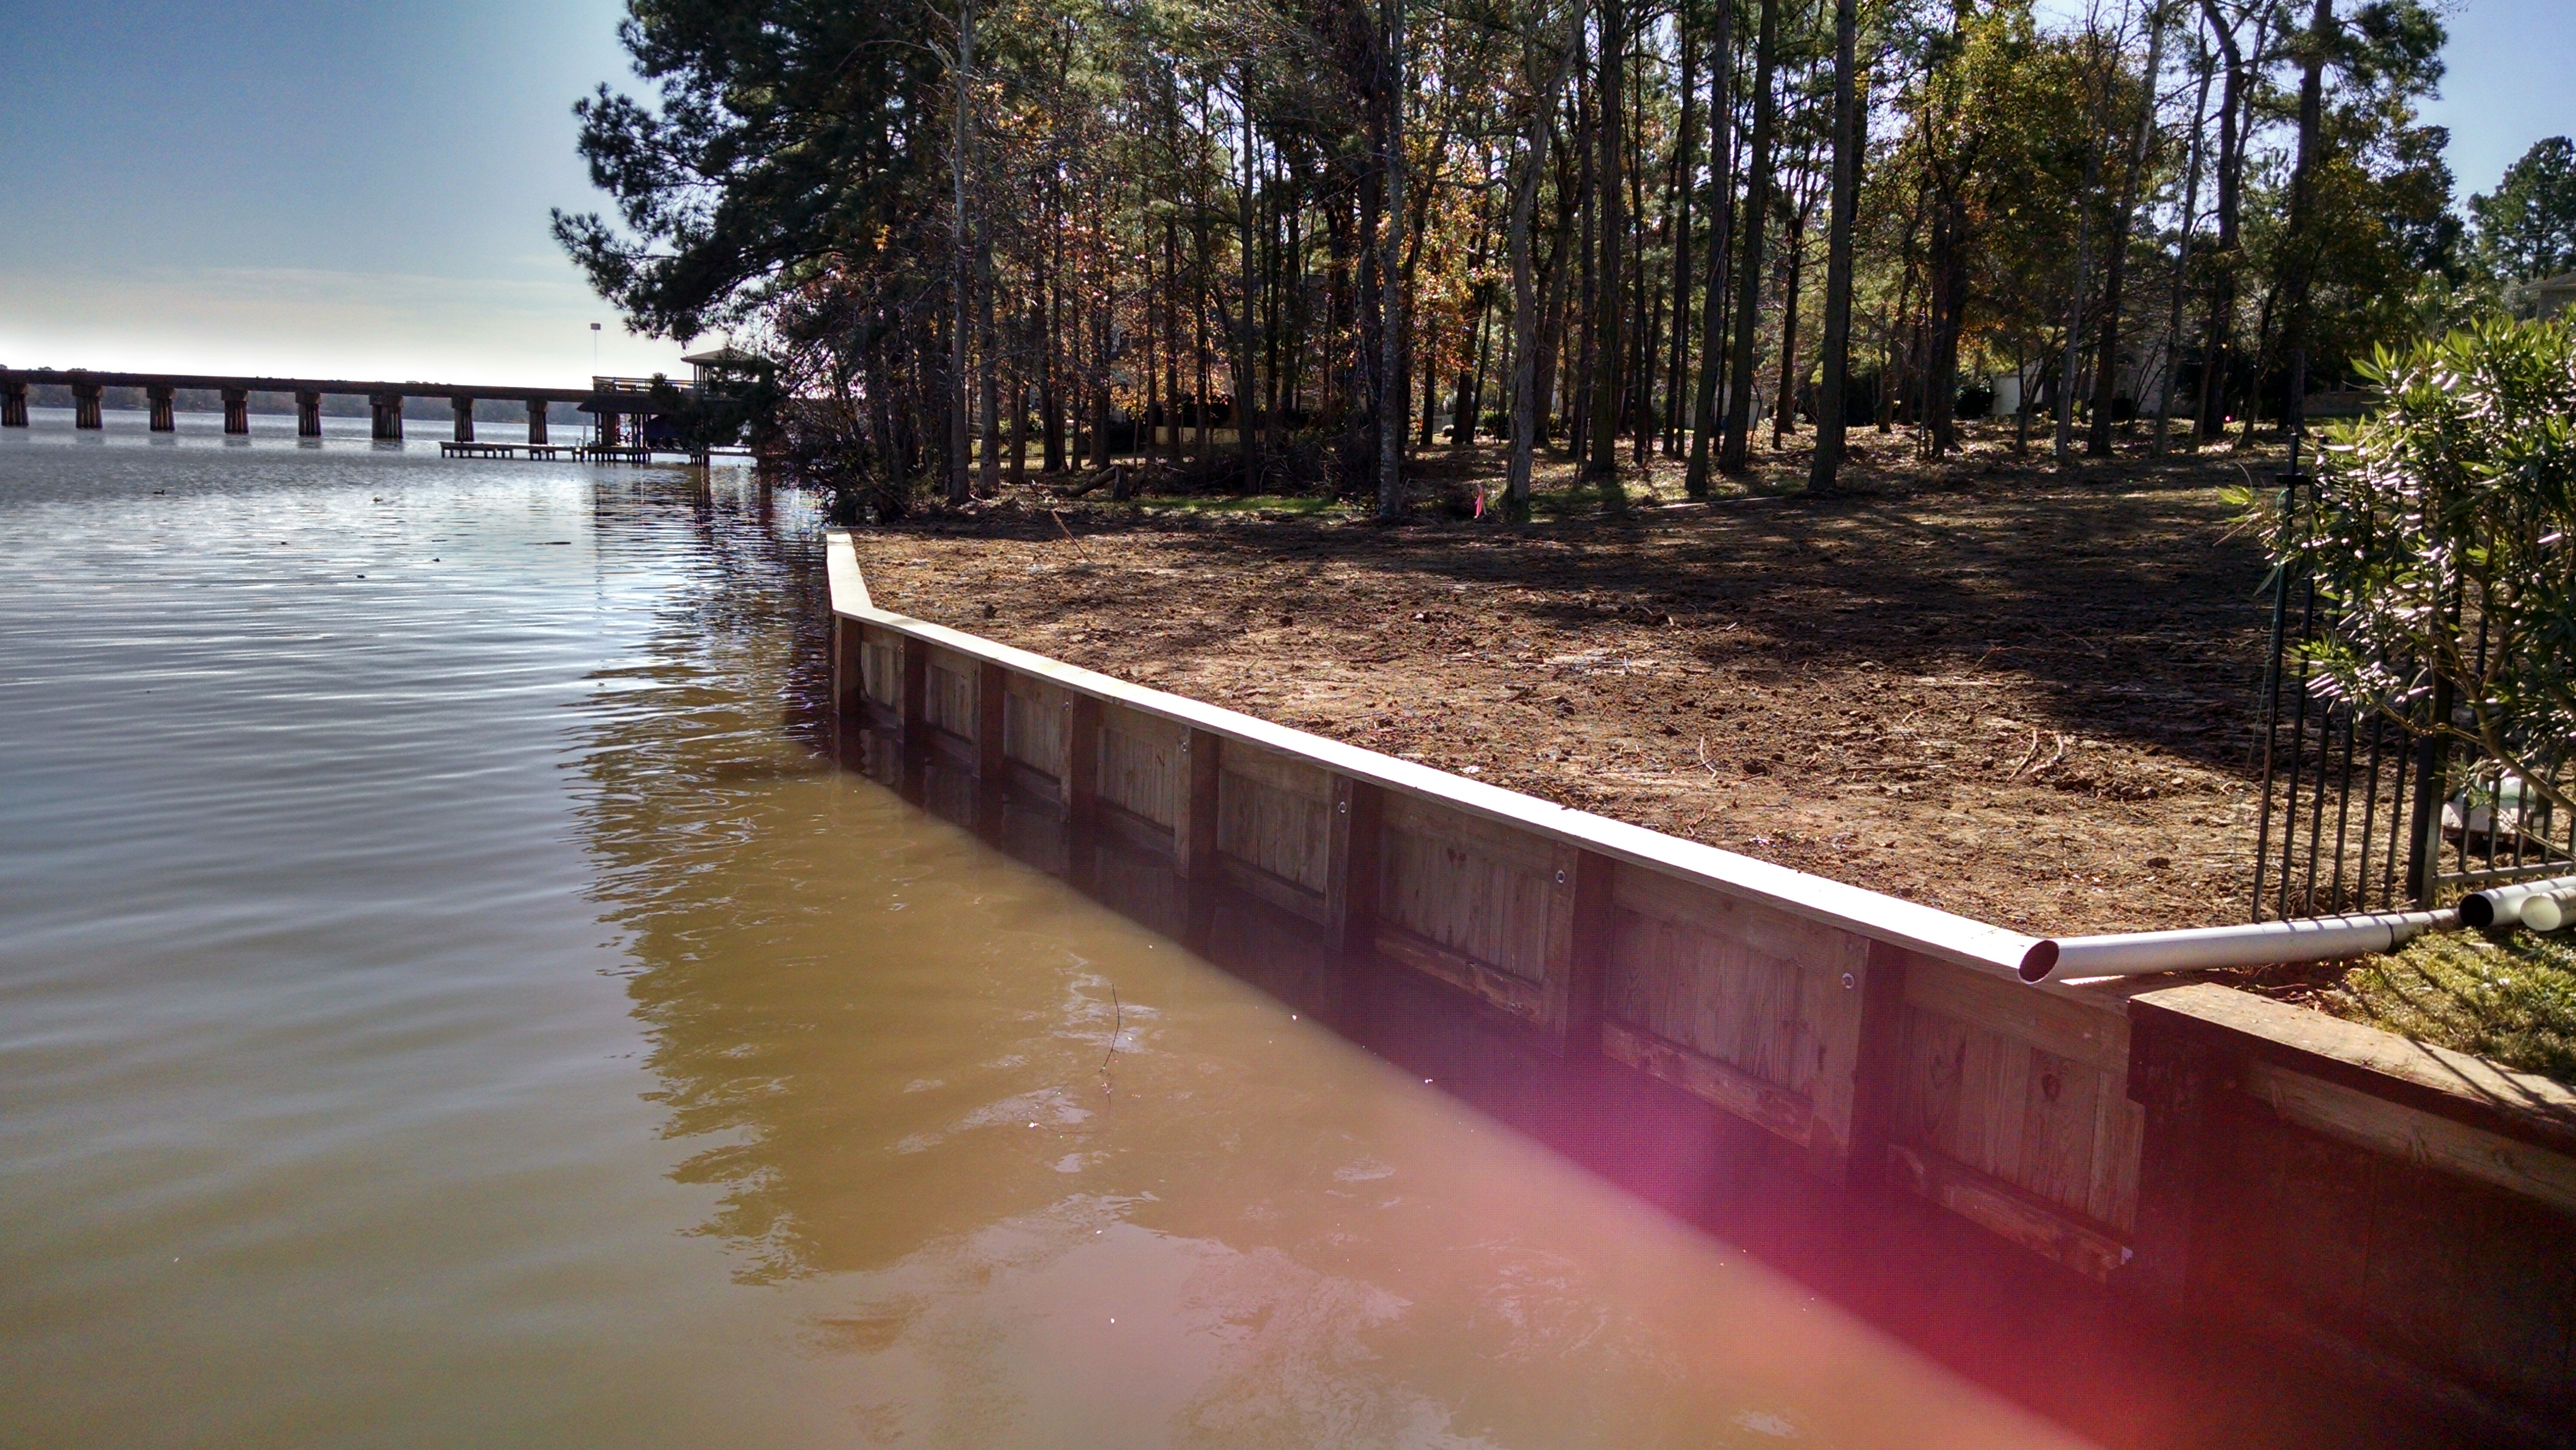 After bulkhead construction replacement at the walden on lake houston